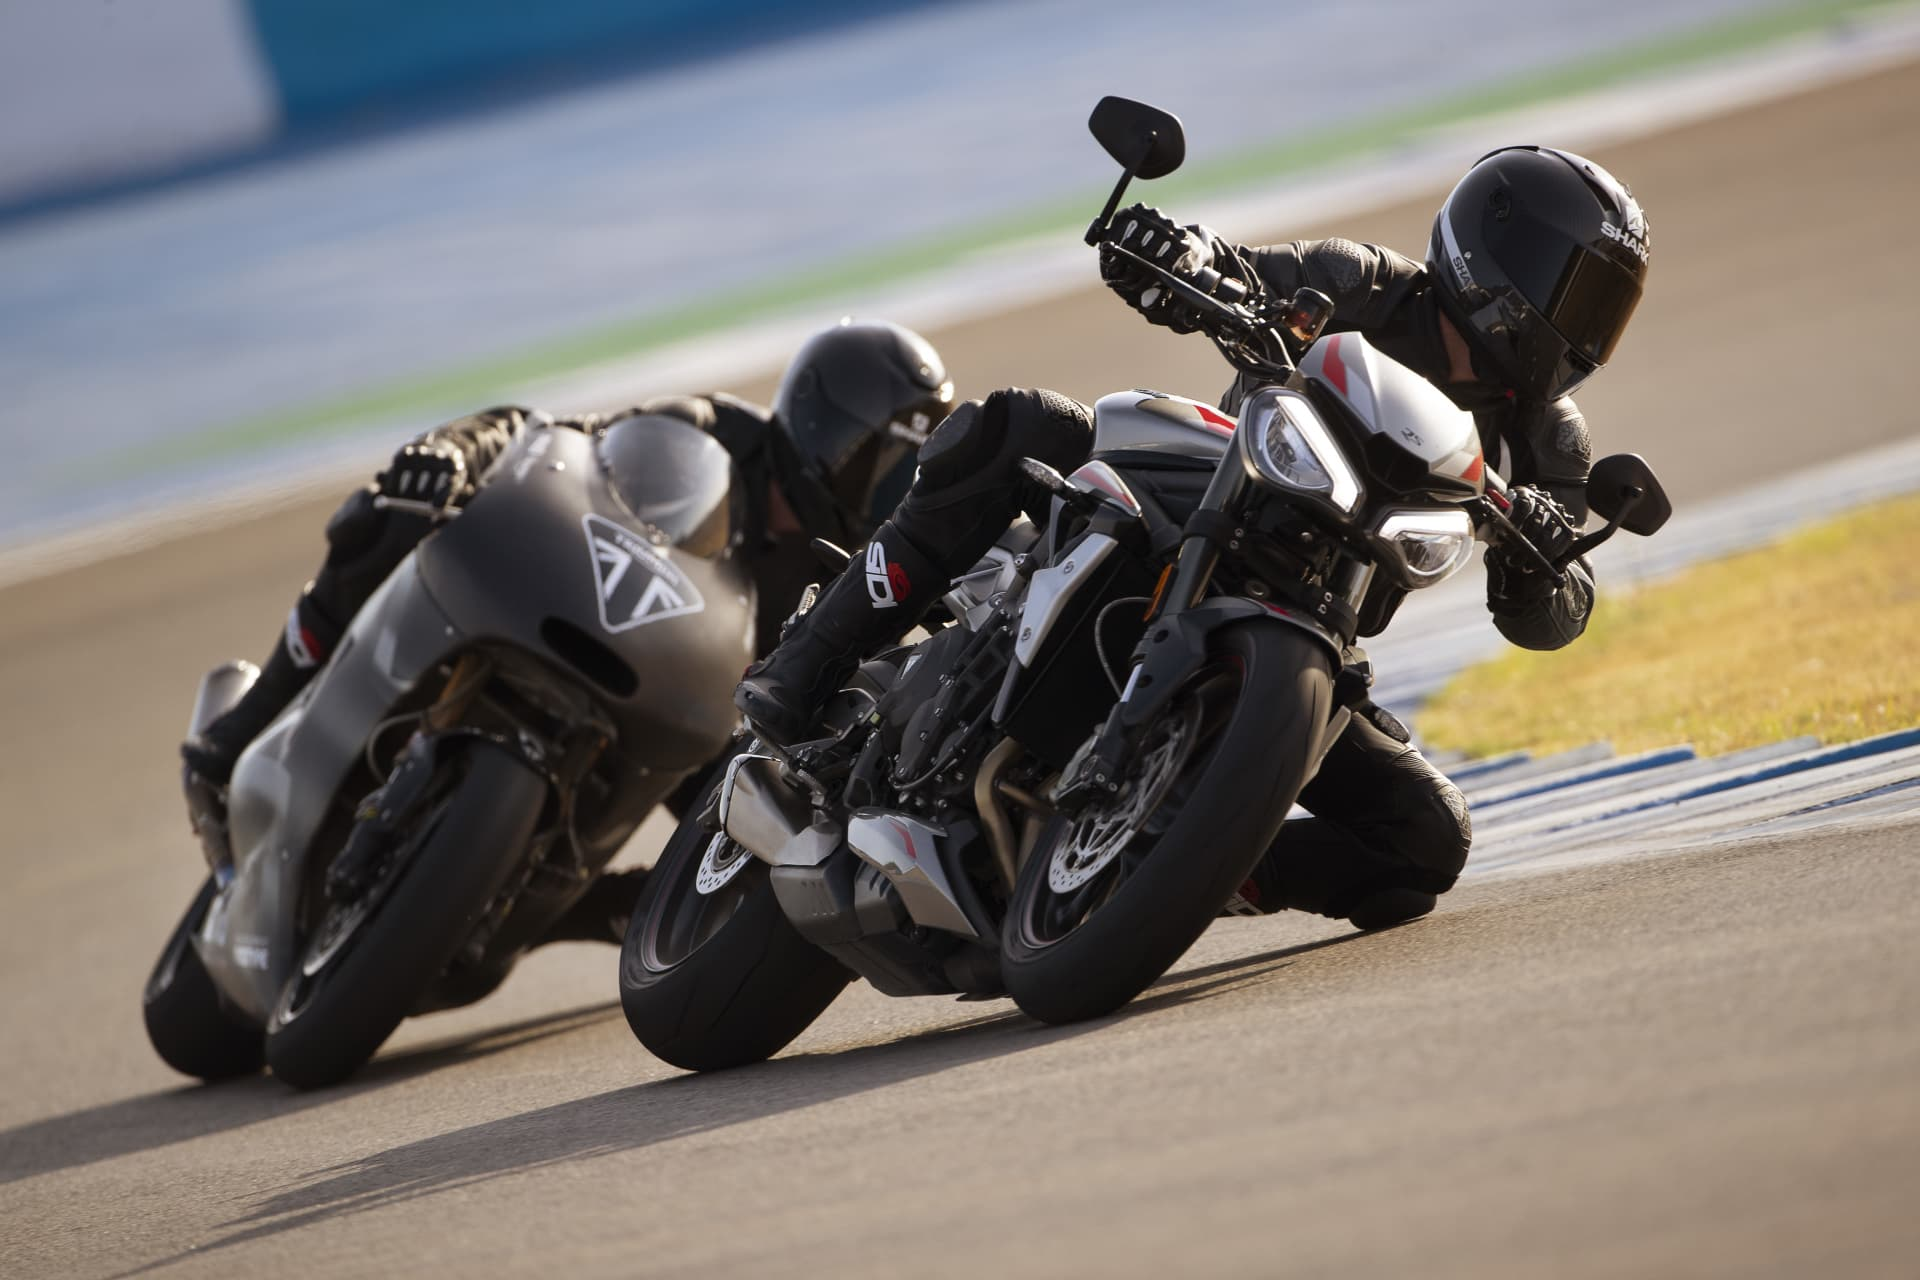 New Street Triple Rs And Moto2 Prototype Dynamic